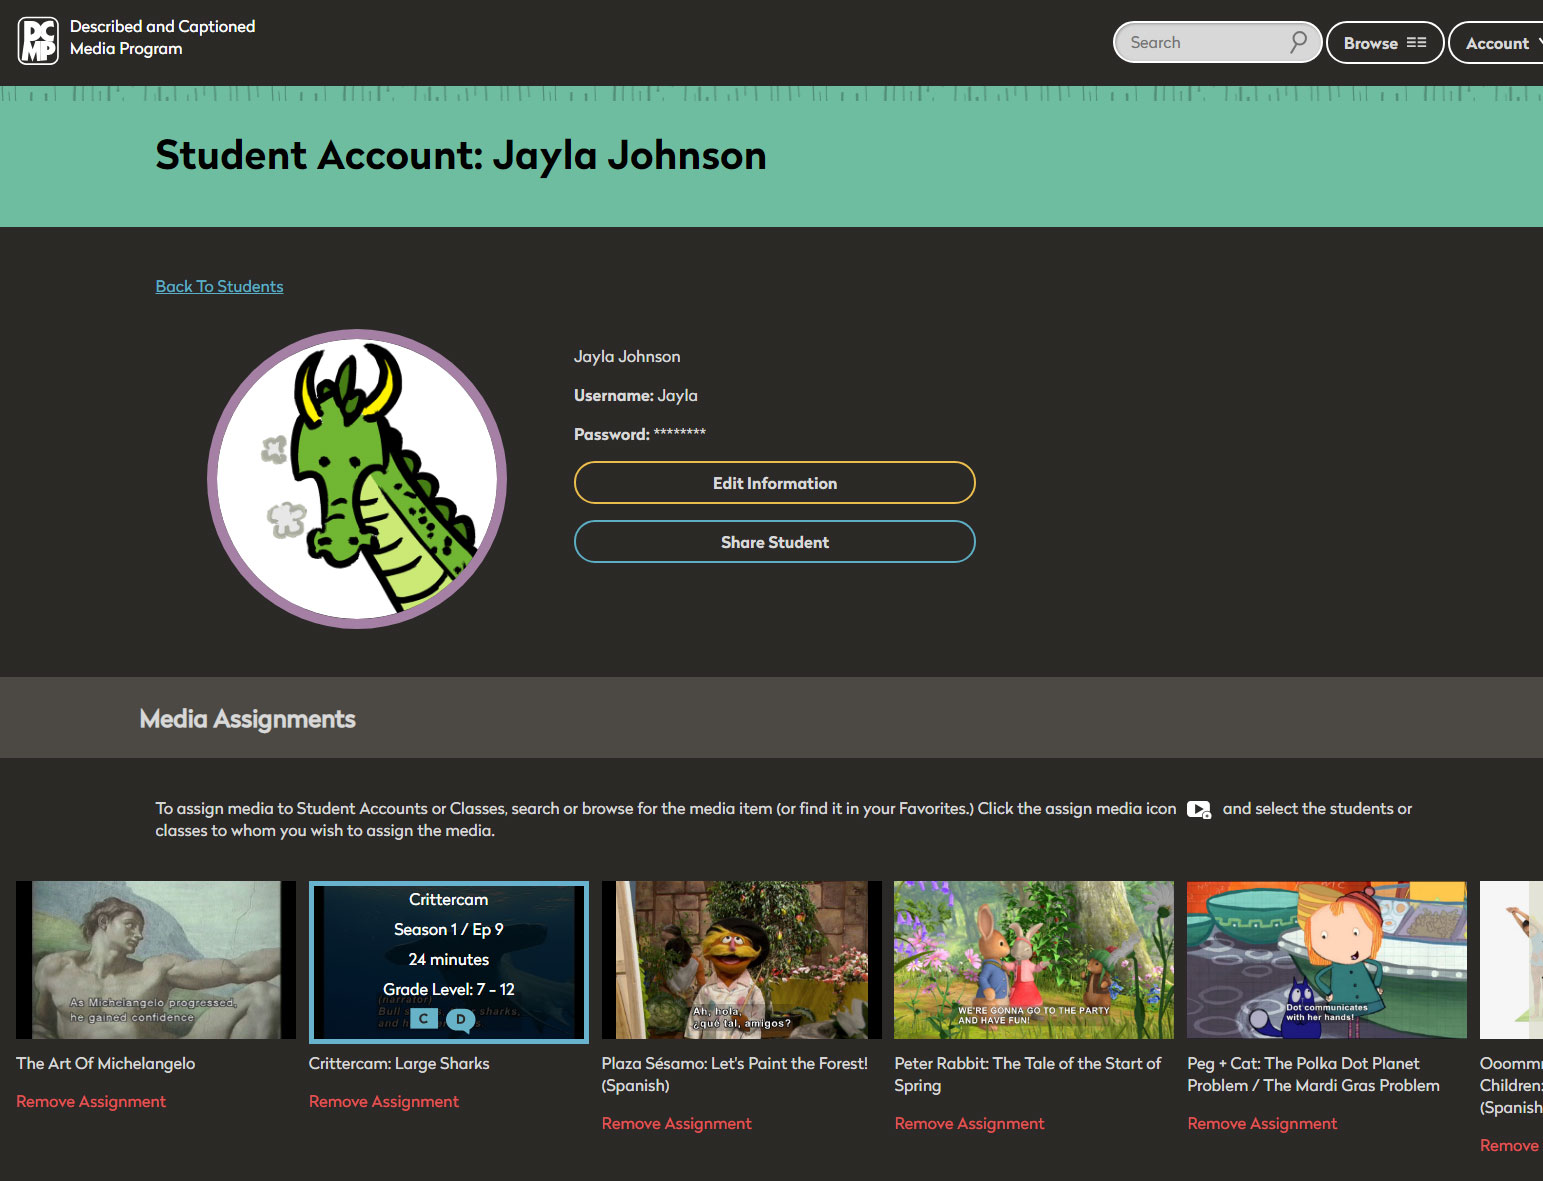 Screen shot of student account page with cartoon avatar, student name, and list of assigned media.